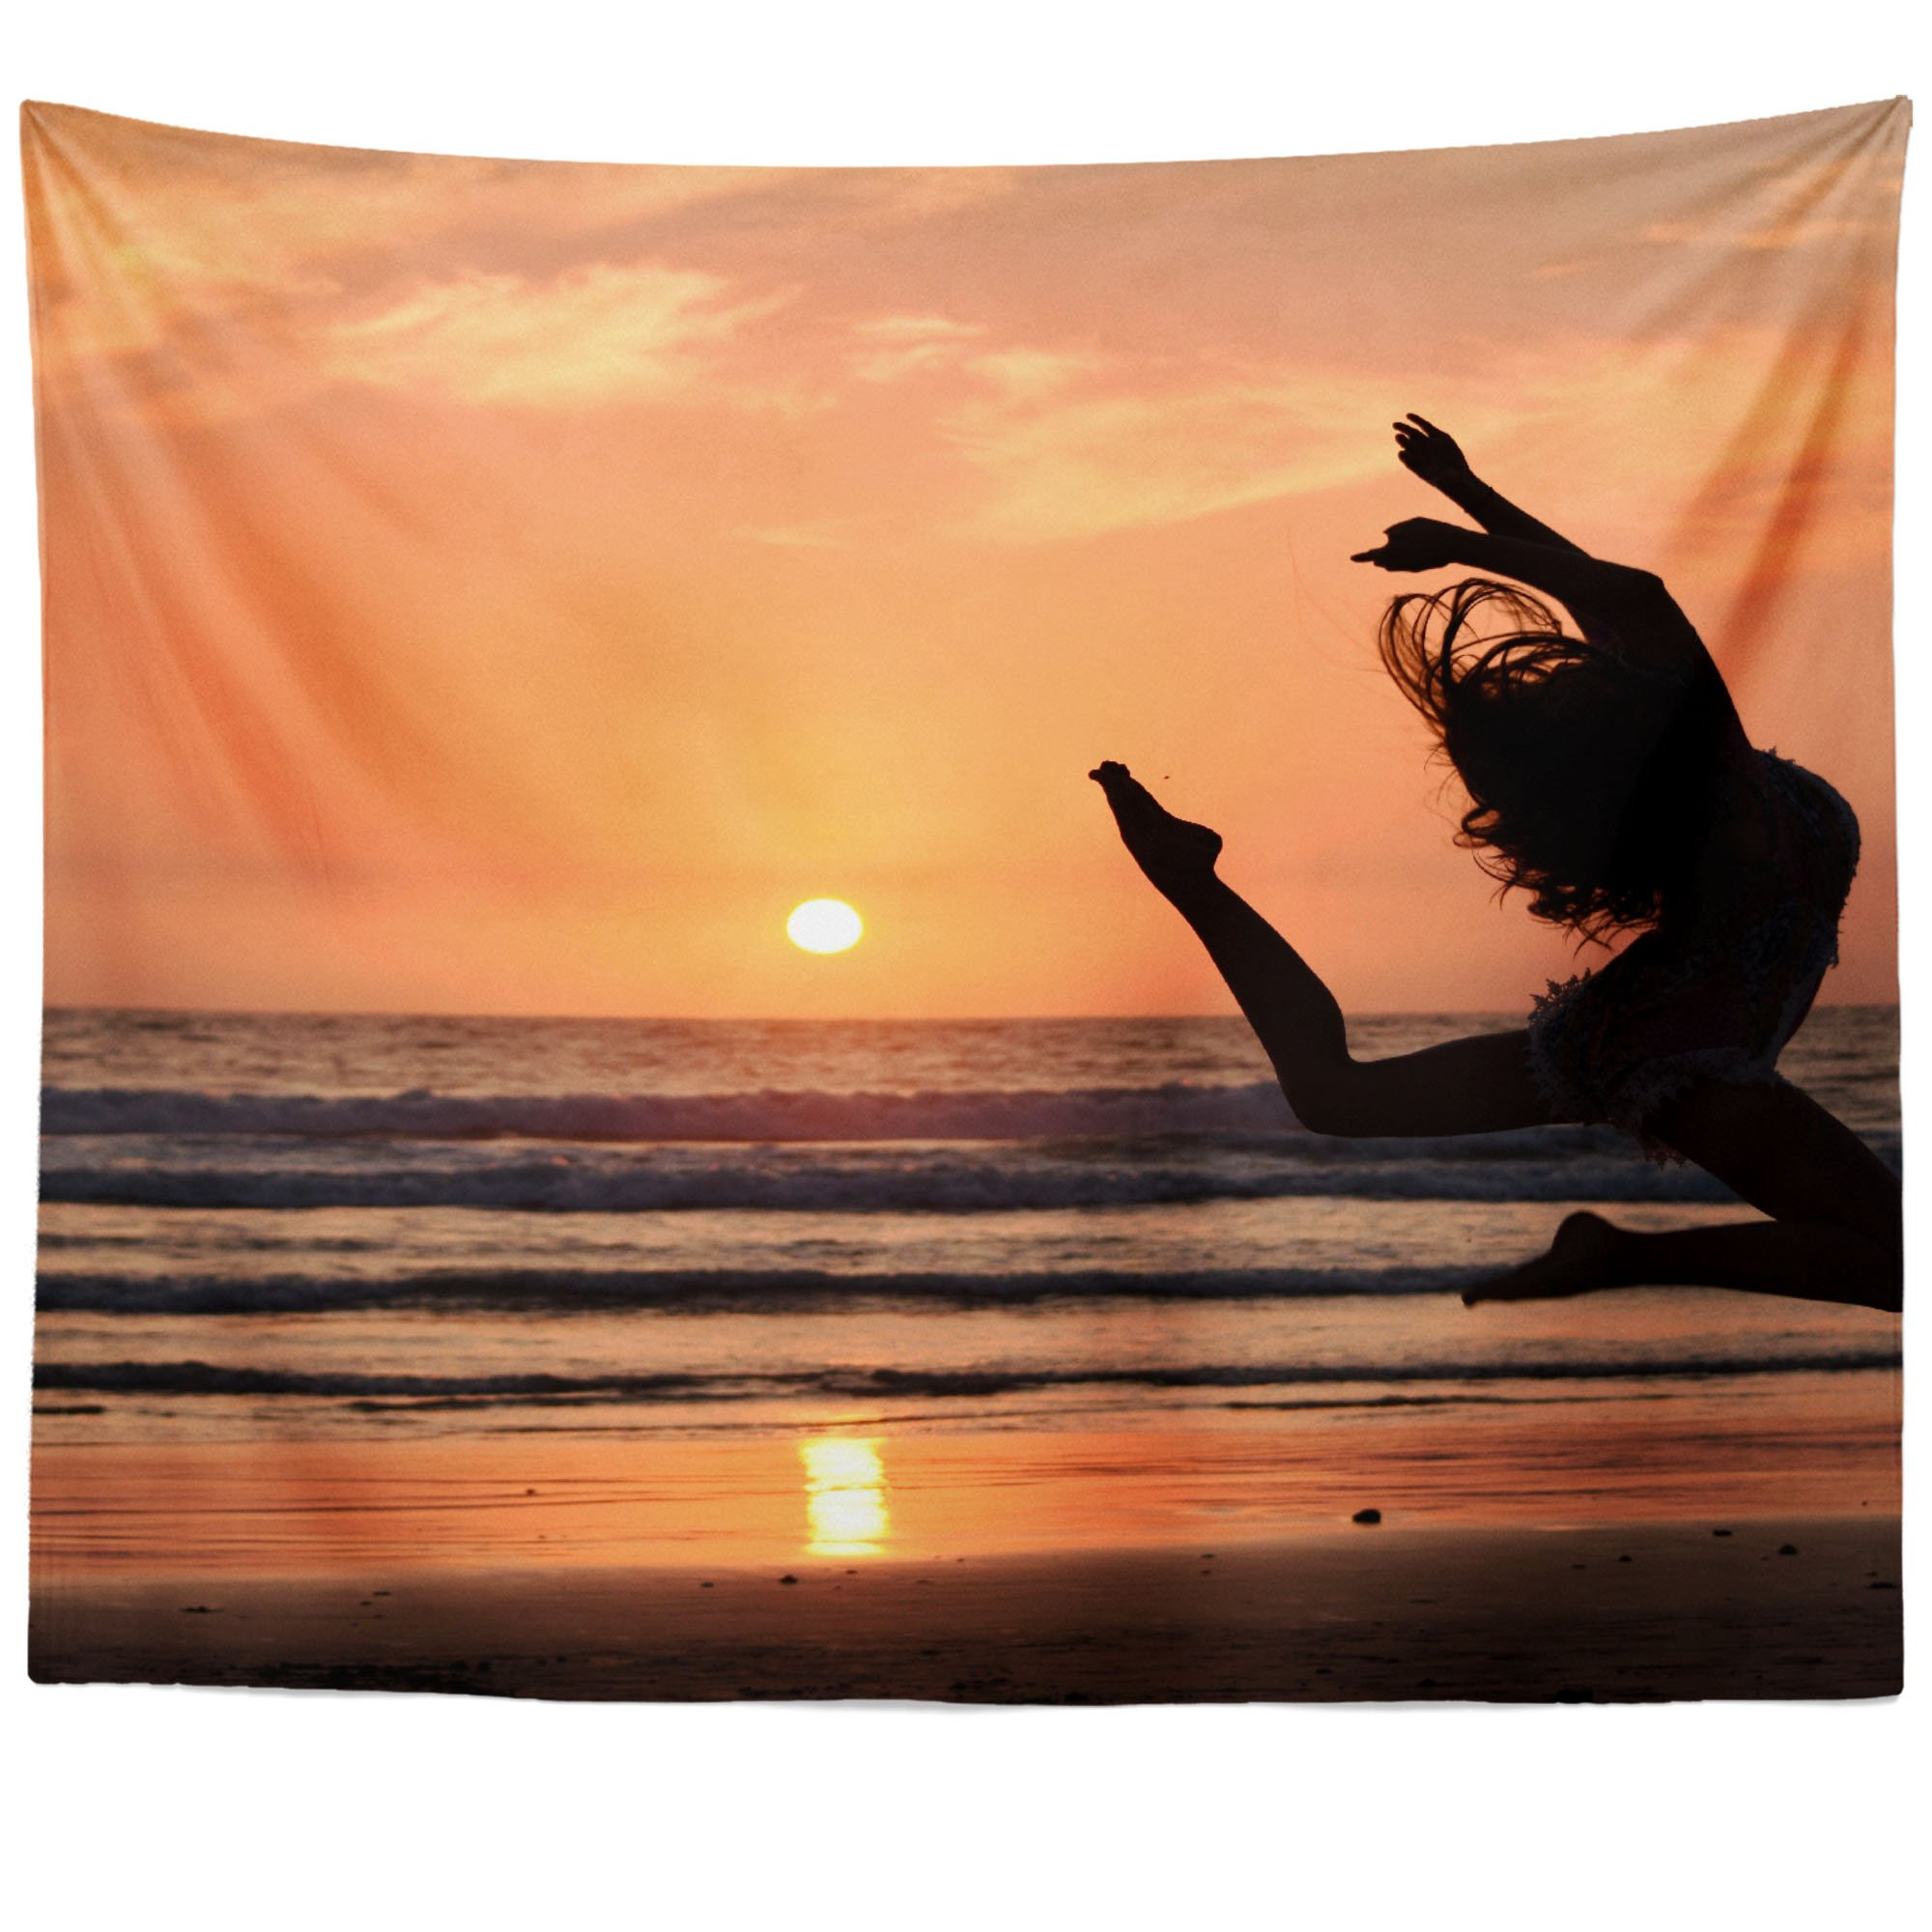 Westlake Art - Dance Sunset - Wall Hanging Tapestry - Picture Photography Artwork Home Decor Living Room - 68x80 Inch (8051-2A225)